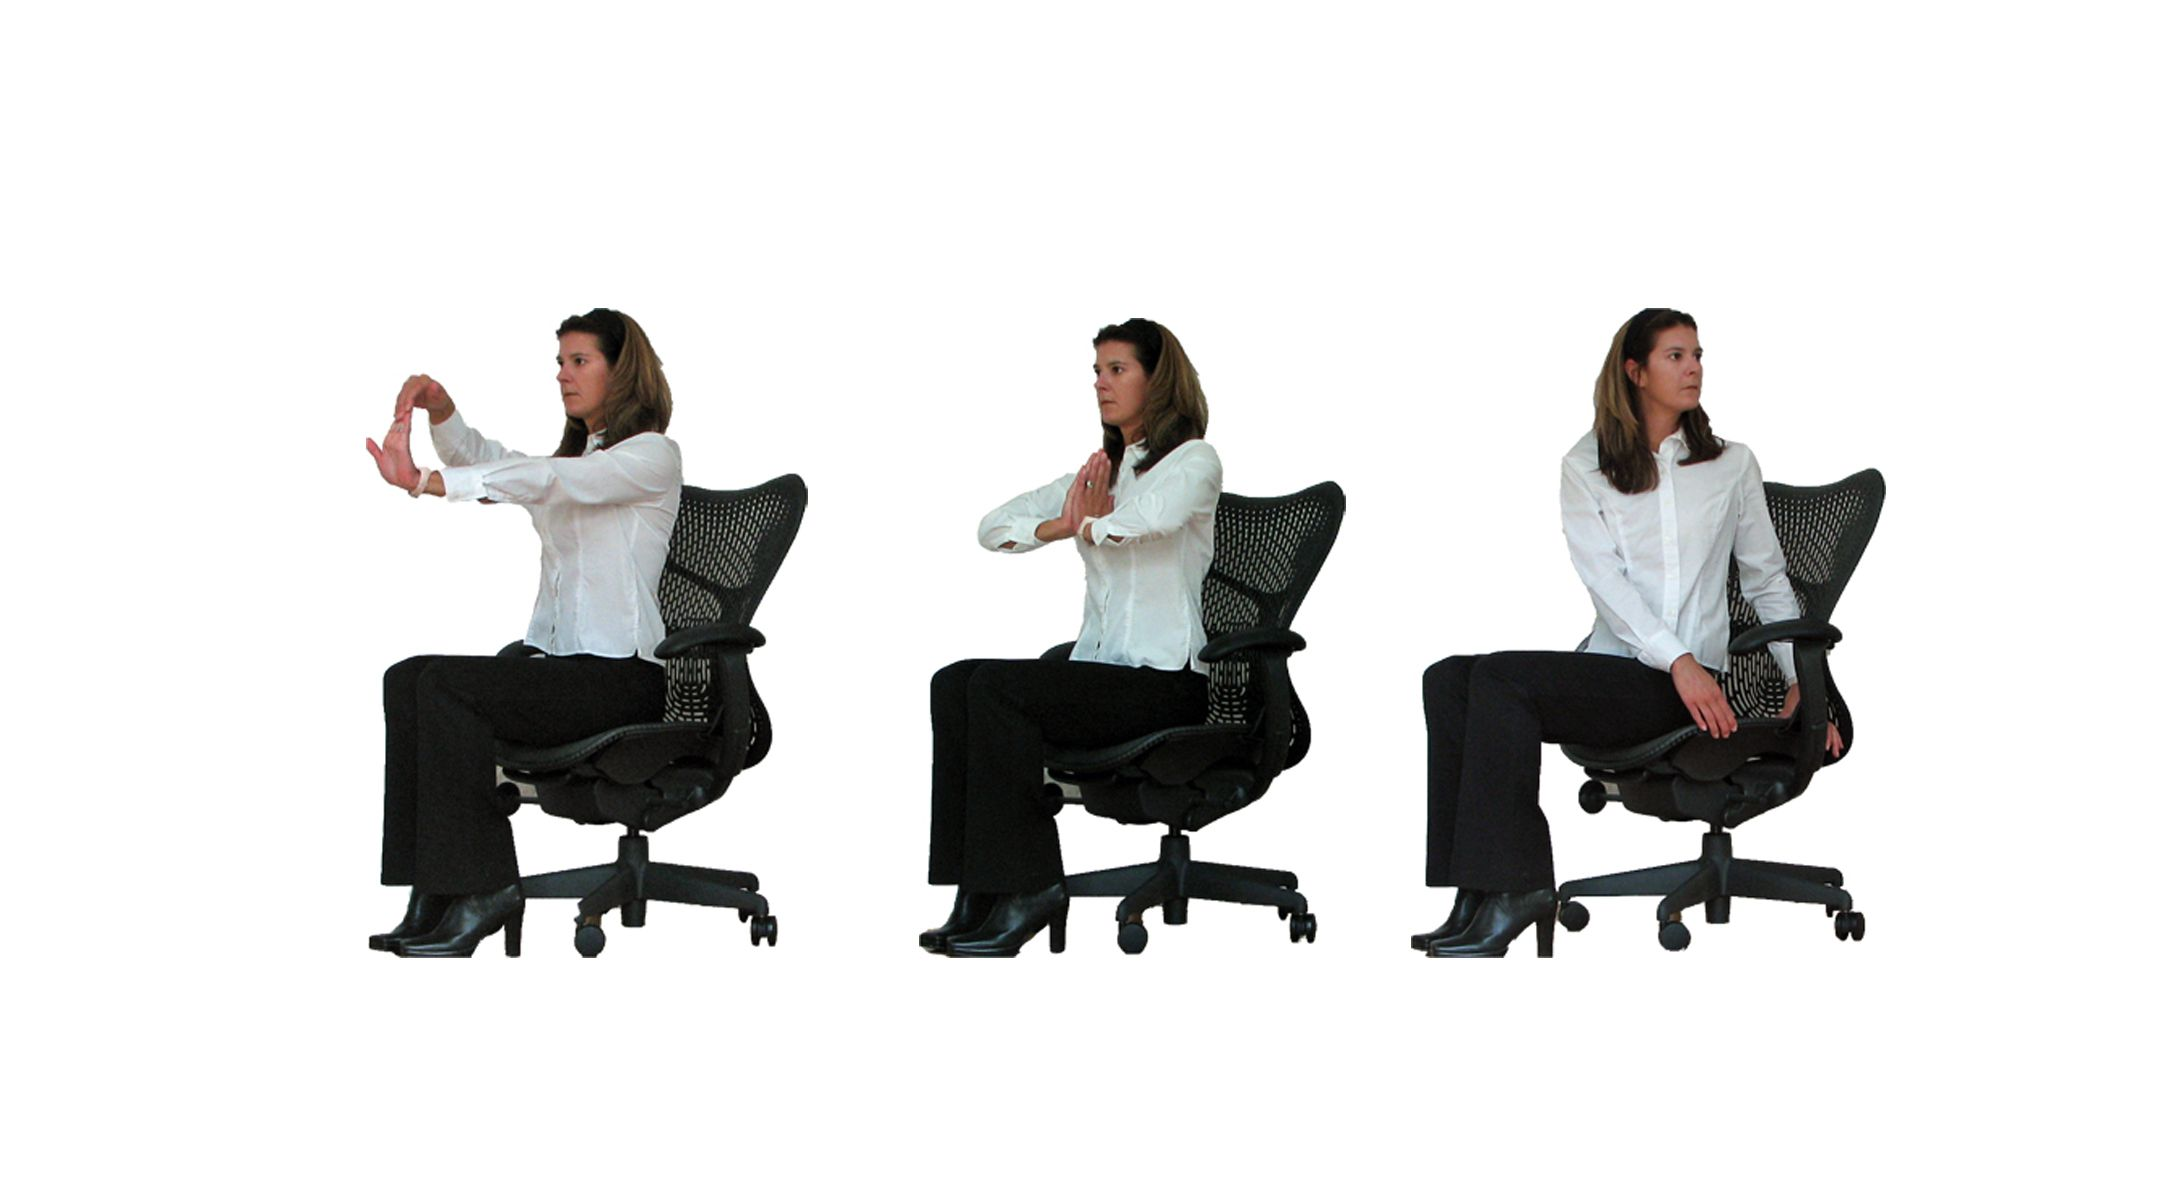 Chair Exercises For Obese Shoulder Rolls Seated Stretches To De Stress